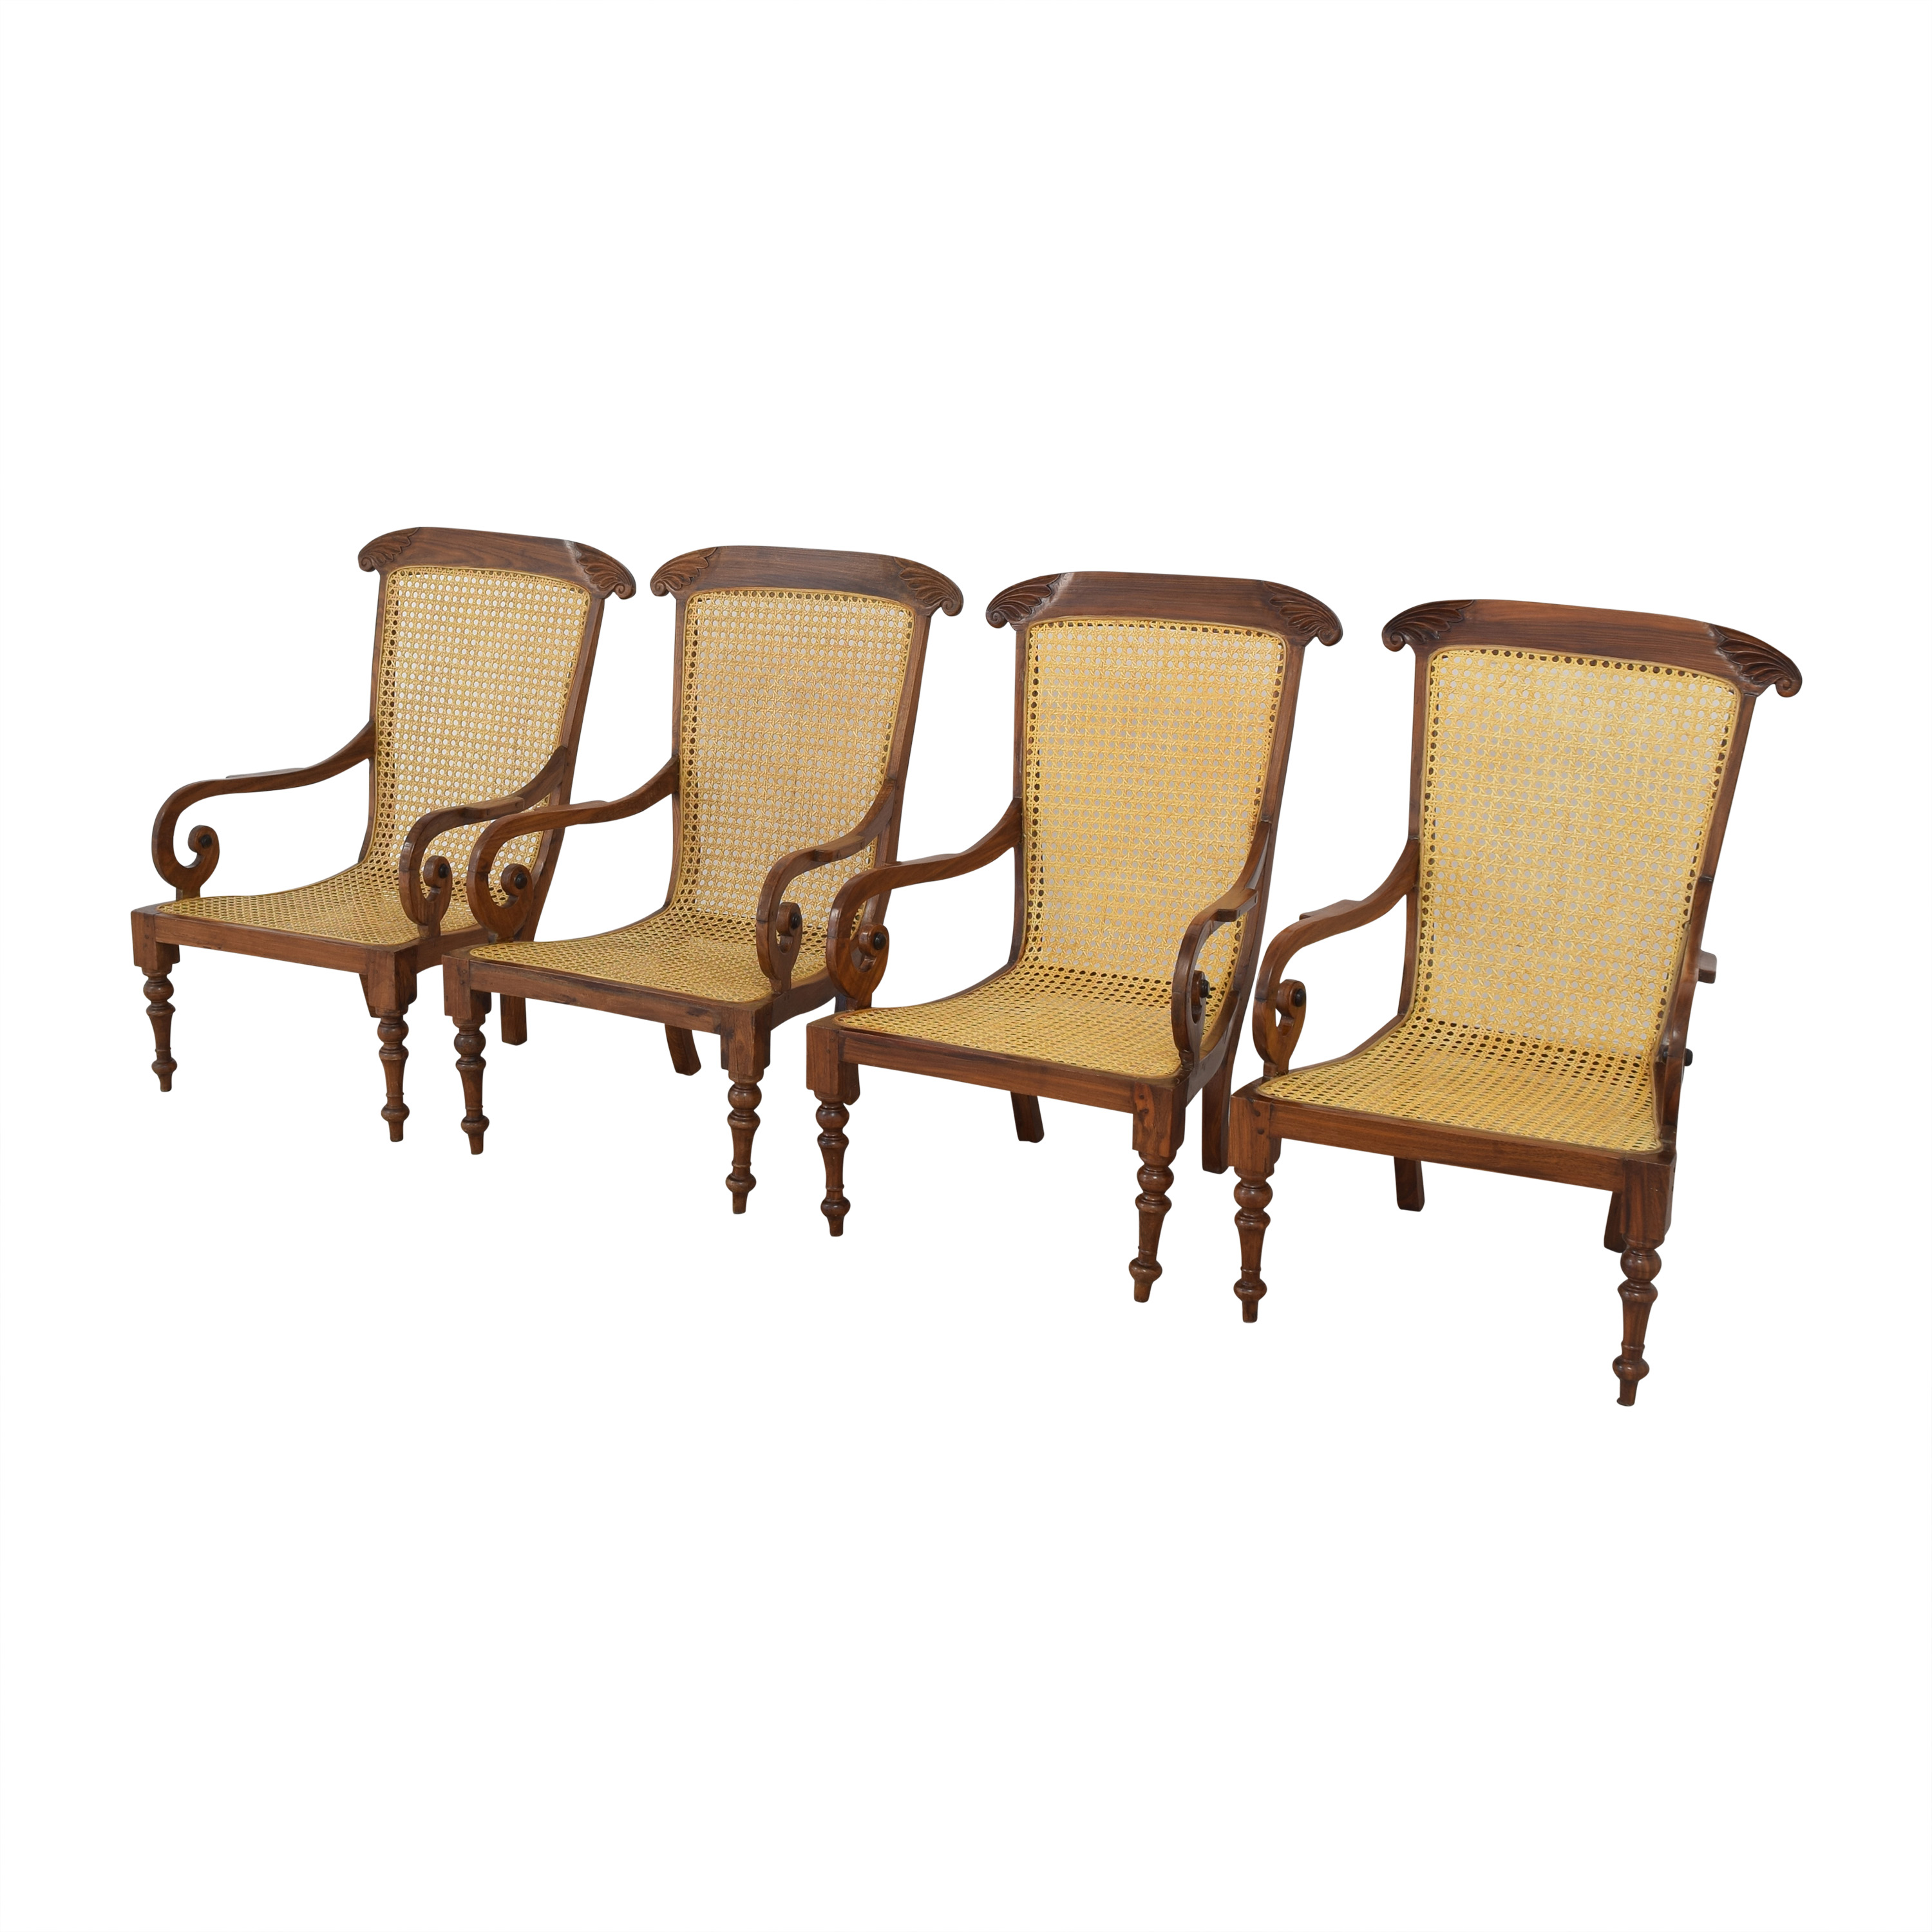 Vintage Carved Colonial-Style Chairs price